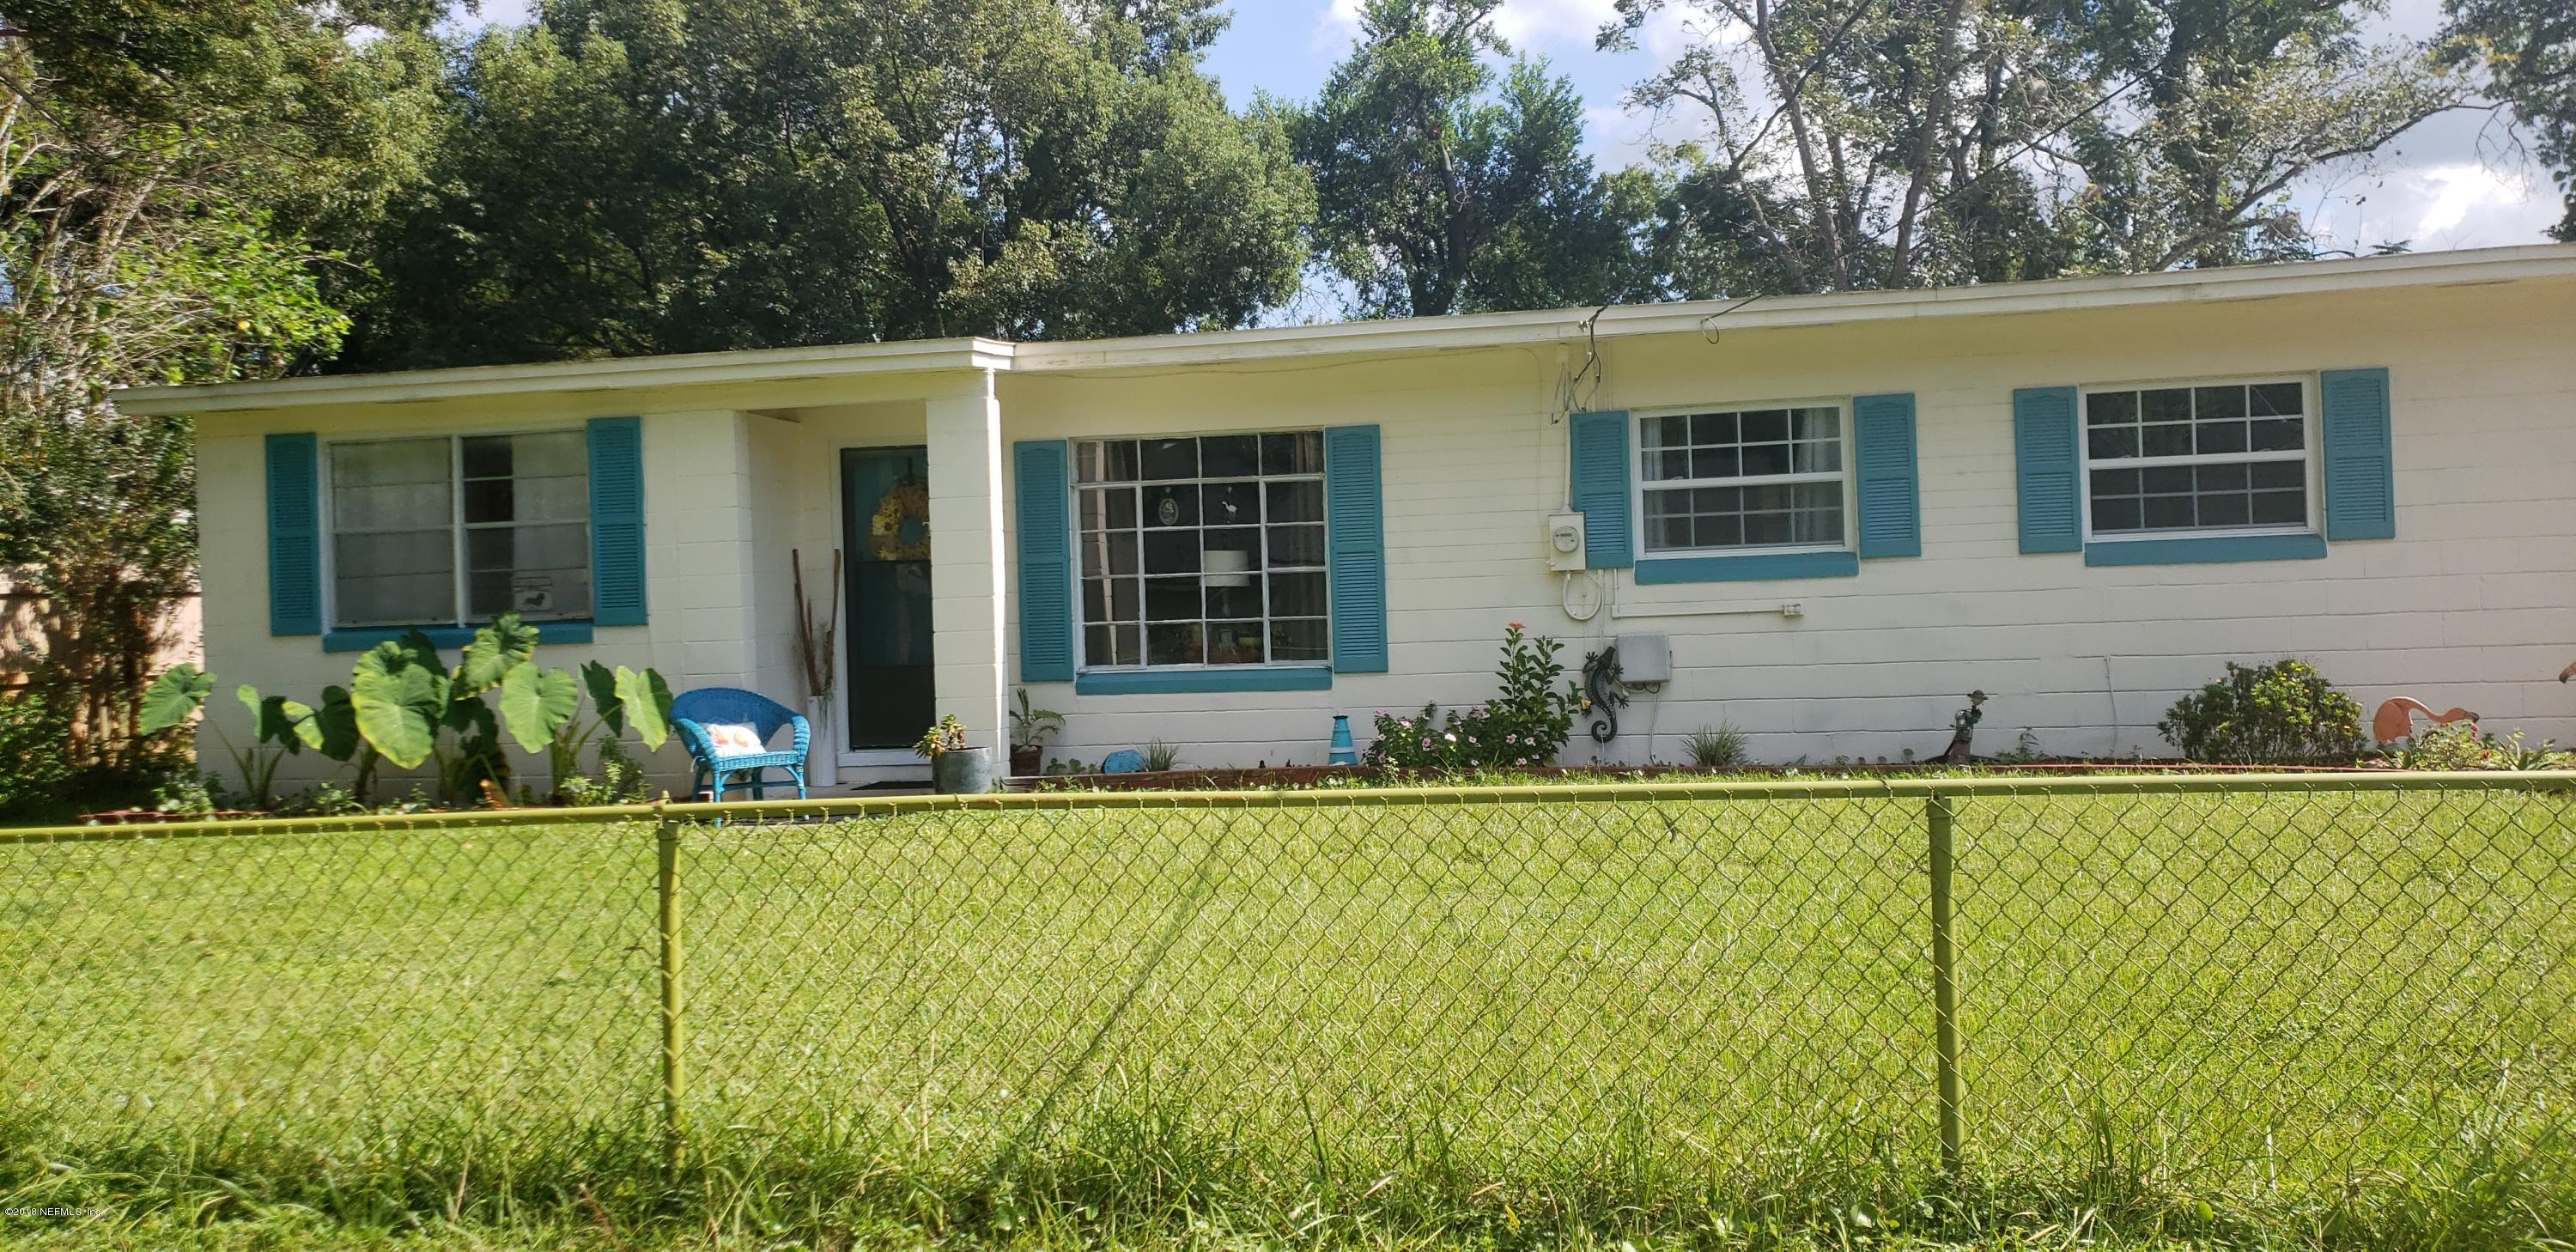 1615 FRIAR, JACKSONVILLE, FLORIDA 32211, 3 Bedrooms Bedrooms, ,1 BathroomBathrooms,Residential - single family,For sale,FRIAR,957900